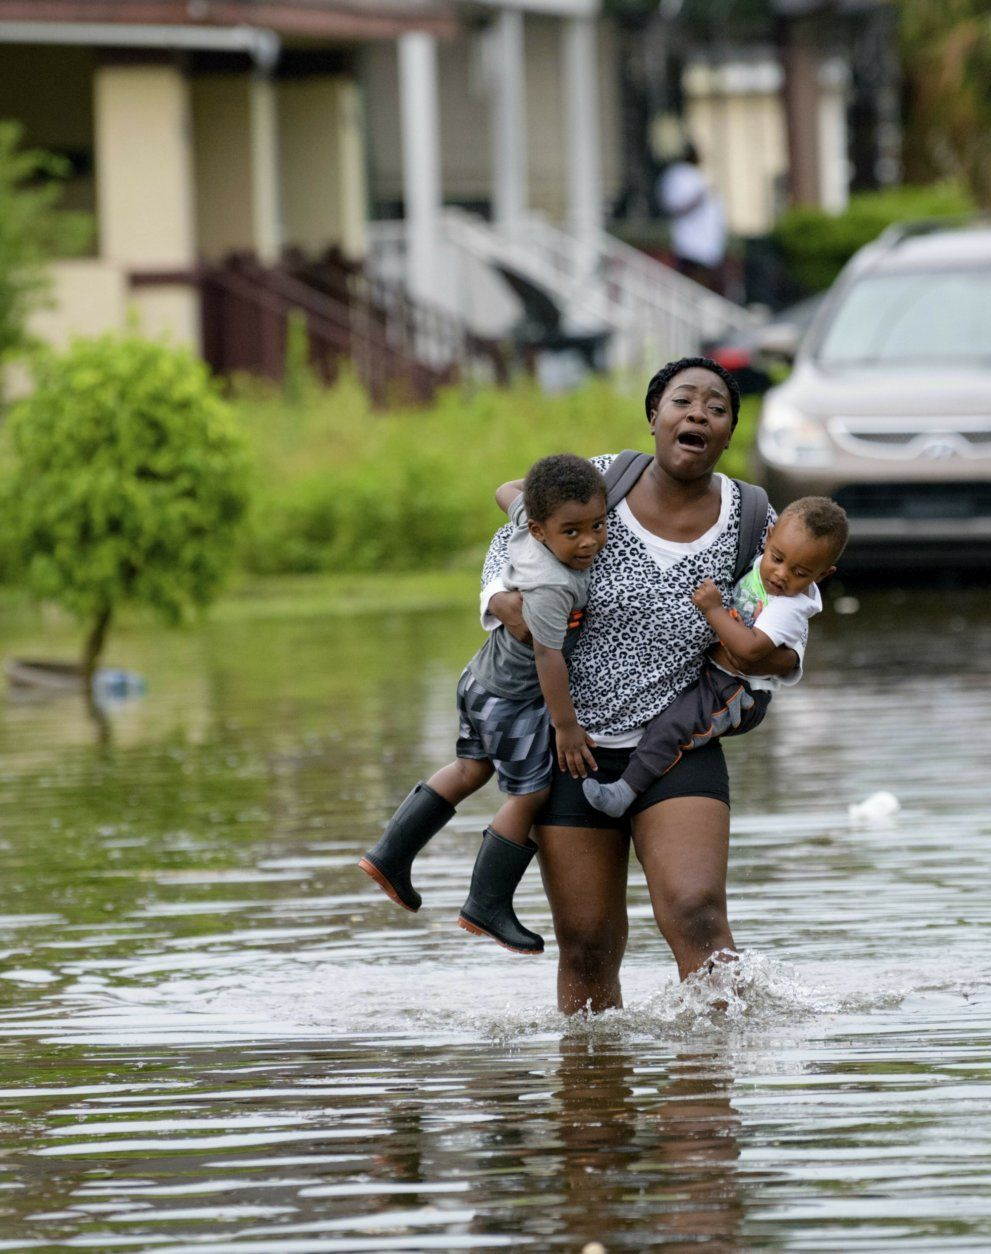 Terrian Jones reacts as she feels something moving in the water at her feet as she carries Drew and Chance Furlough to their mother on Belfast Street near Eagle Street in New Orleans after flooding from a storm dumped lots of rain on Wednesday, July 10, 2019.  (AP Photo/Matthew Hinton)